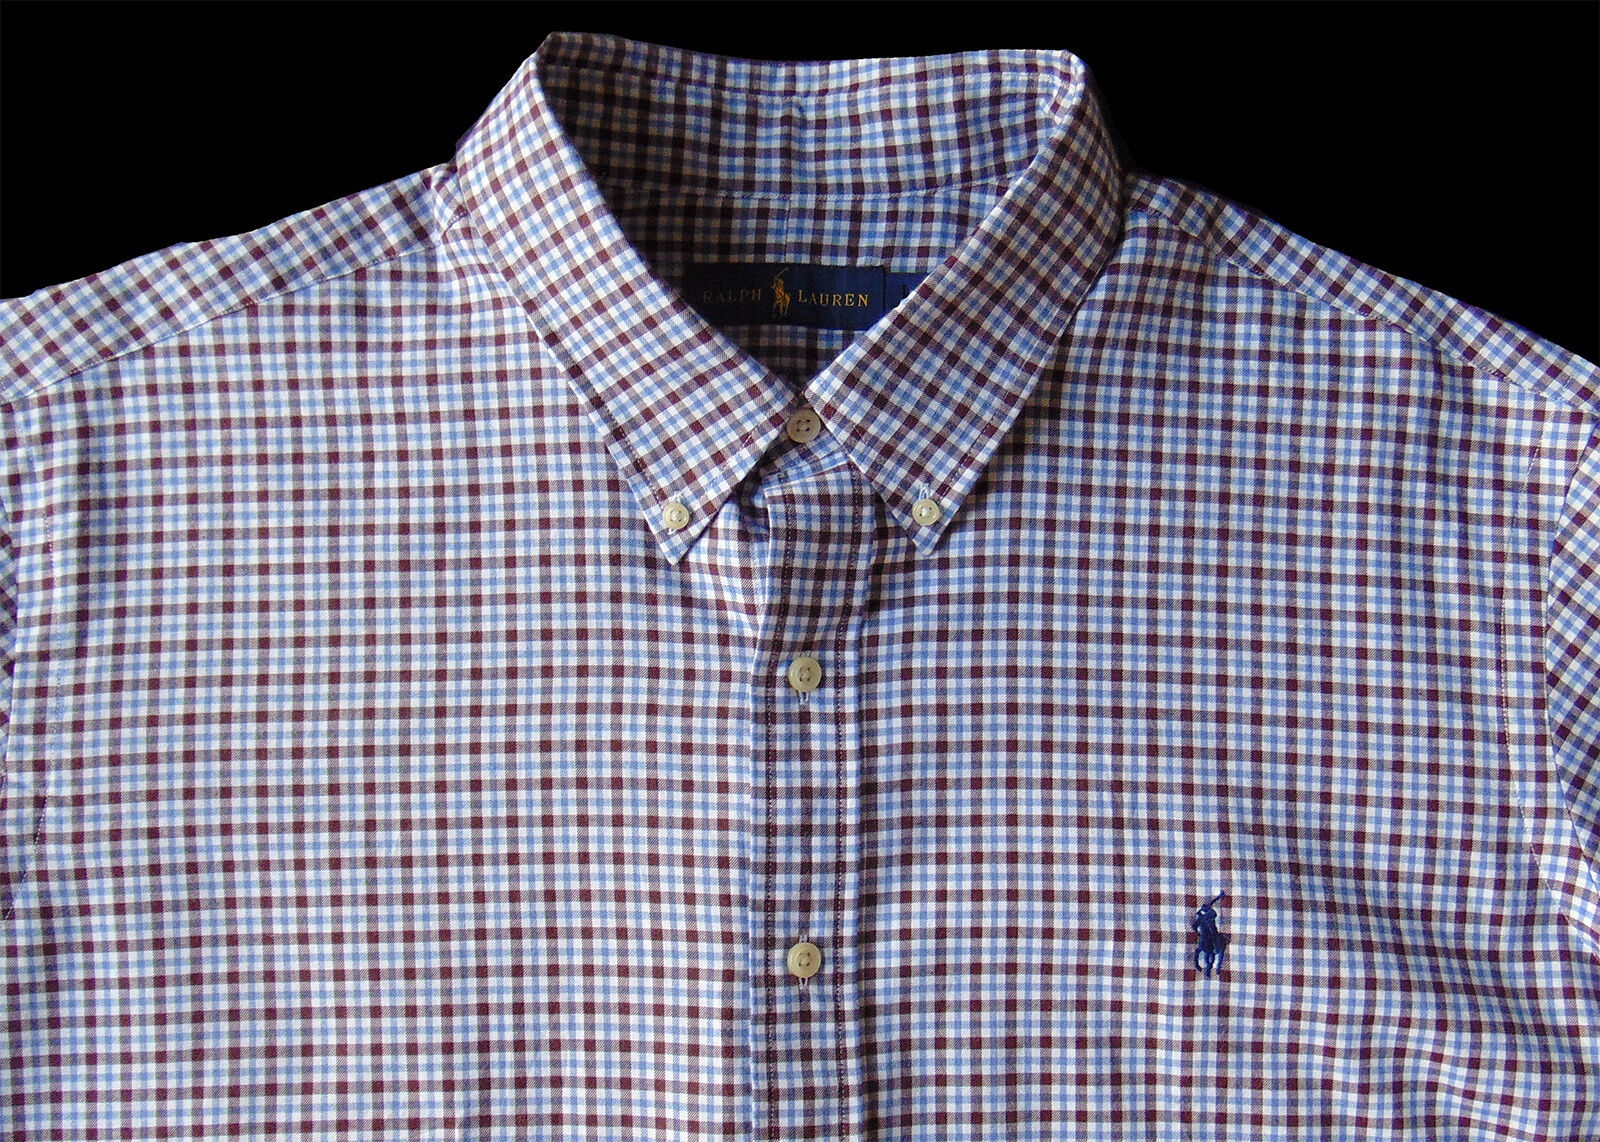 Men's RALPH LAUREN White Brown bluee Plaid Soft Shirt 3XLT 3LT 3XT TALL NWT NEW